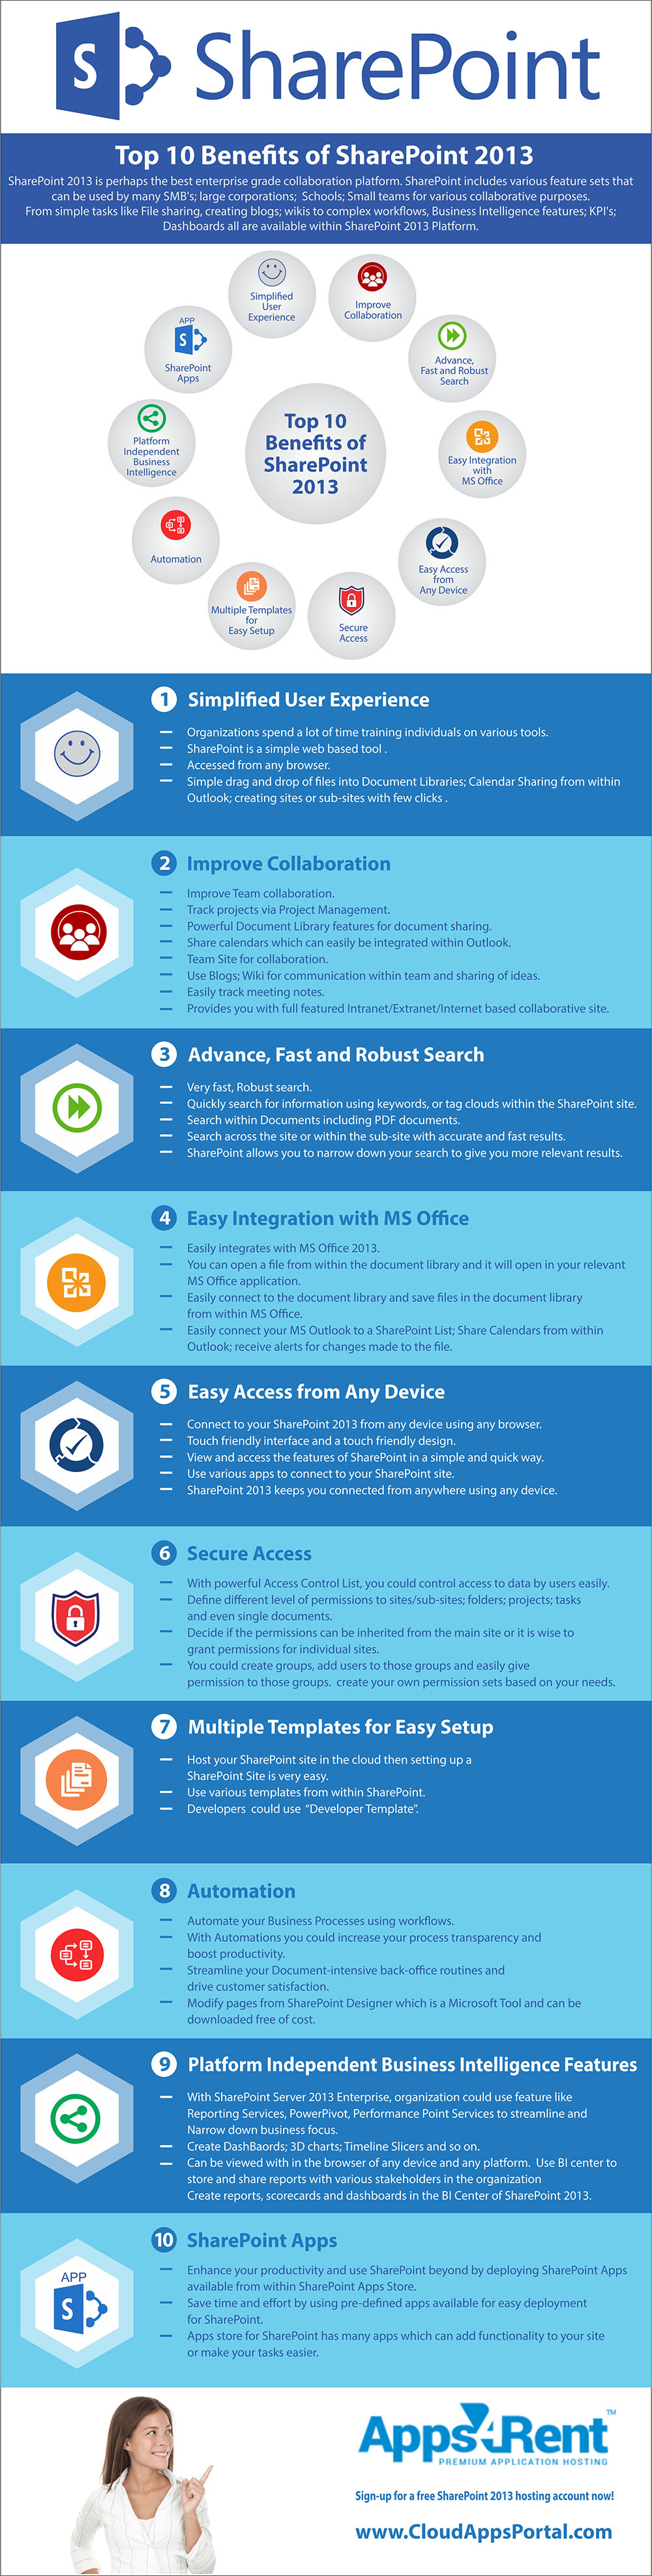 infographic - Top 10 benefits of free SharePoint 2013 hosting cloudappsportal.com